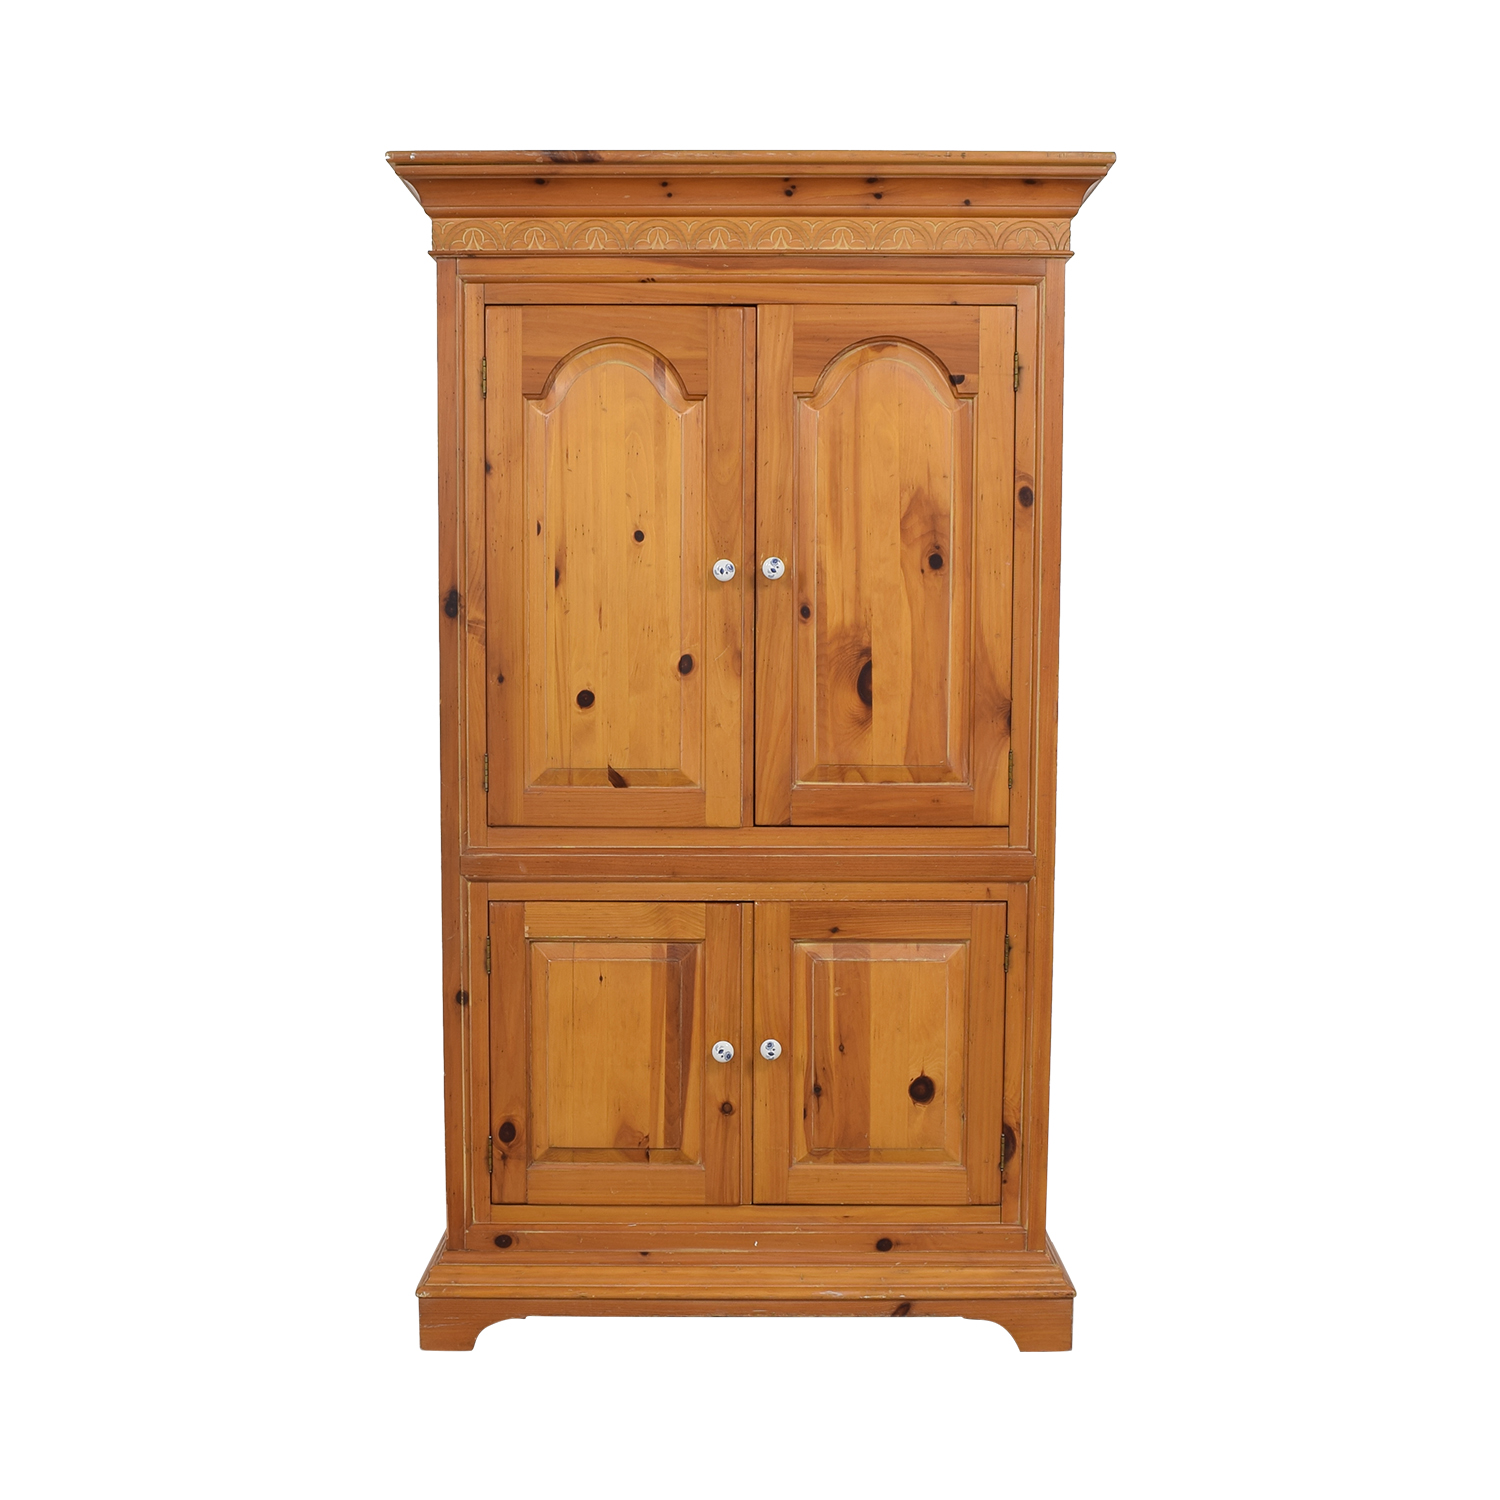 Macy's Macy's Armoire Dresser on sale